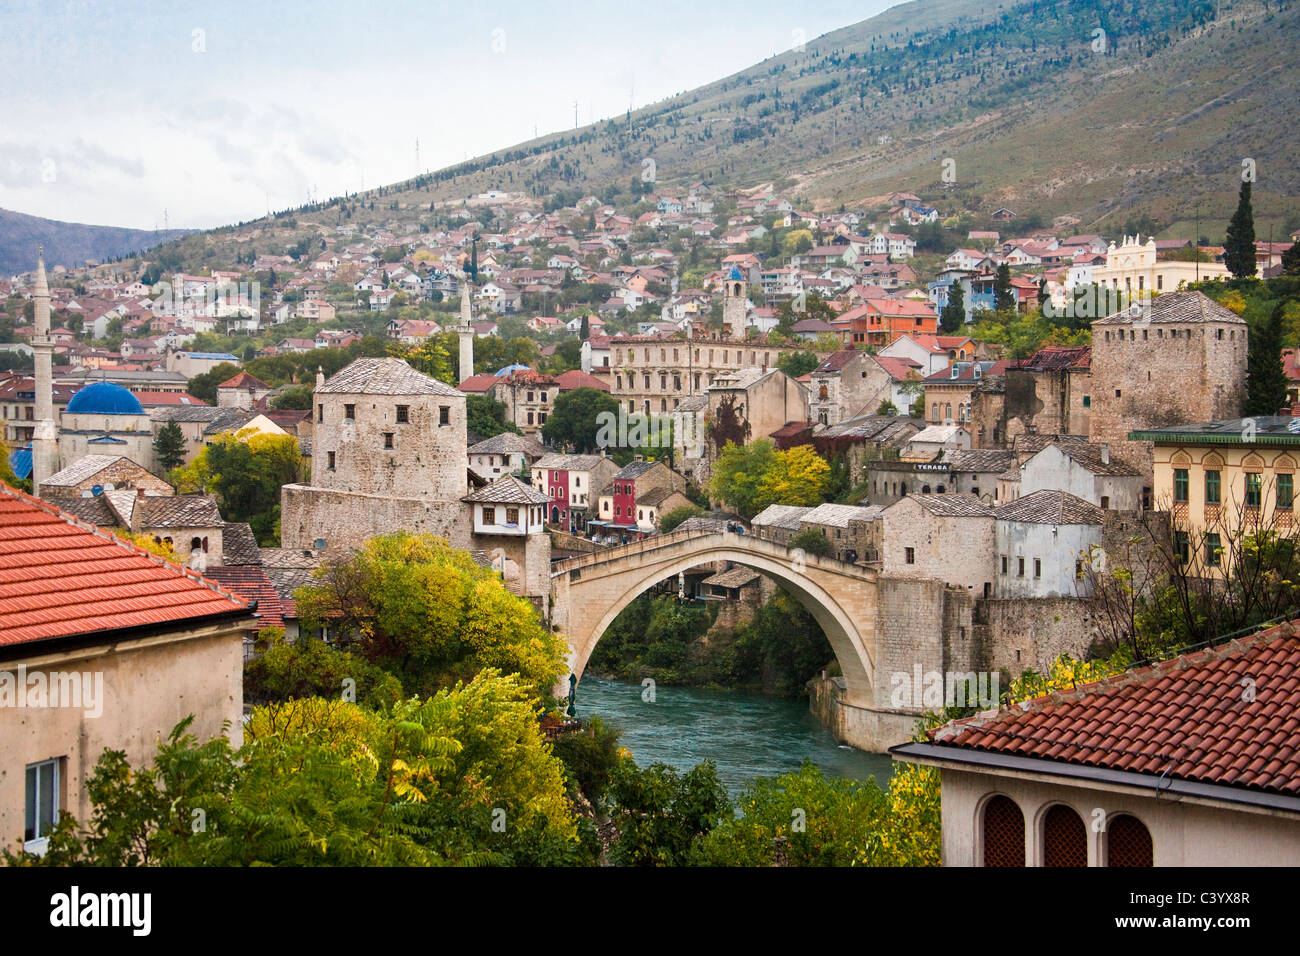 Bosnia Herzegovina, Mostar, Mostar, Old Town, bridge, - Stock Image